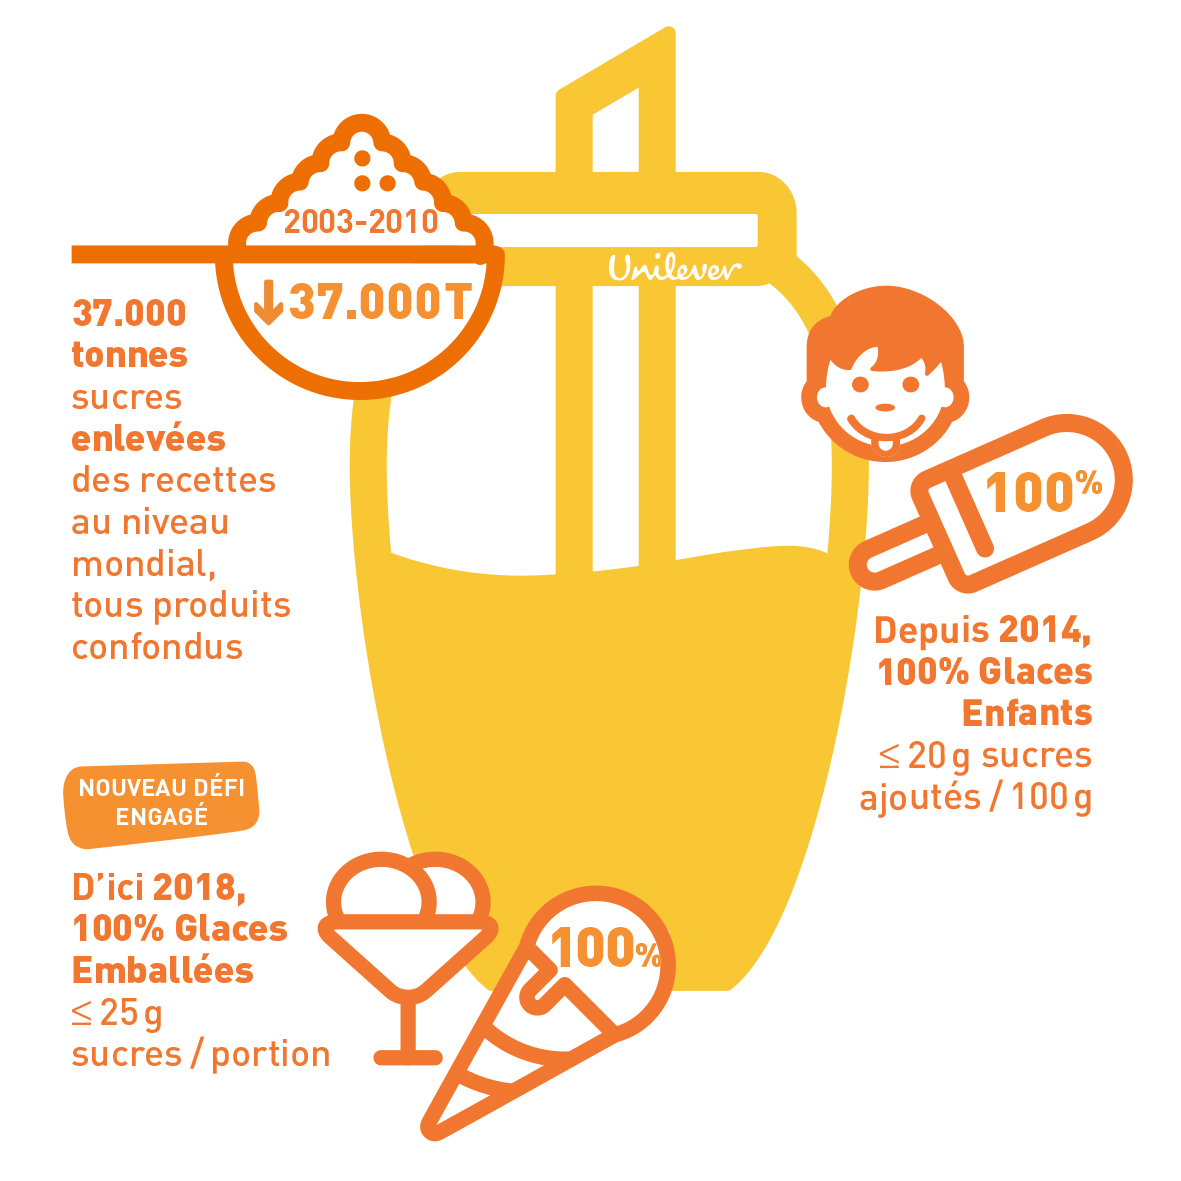 INFOGRAPHIE-Reduction-Sucres-Unilever-Nutrition-21x29,7-300dpi